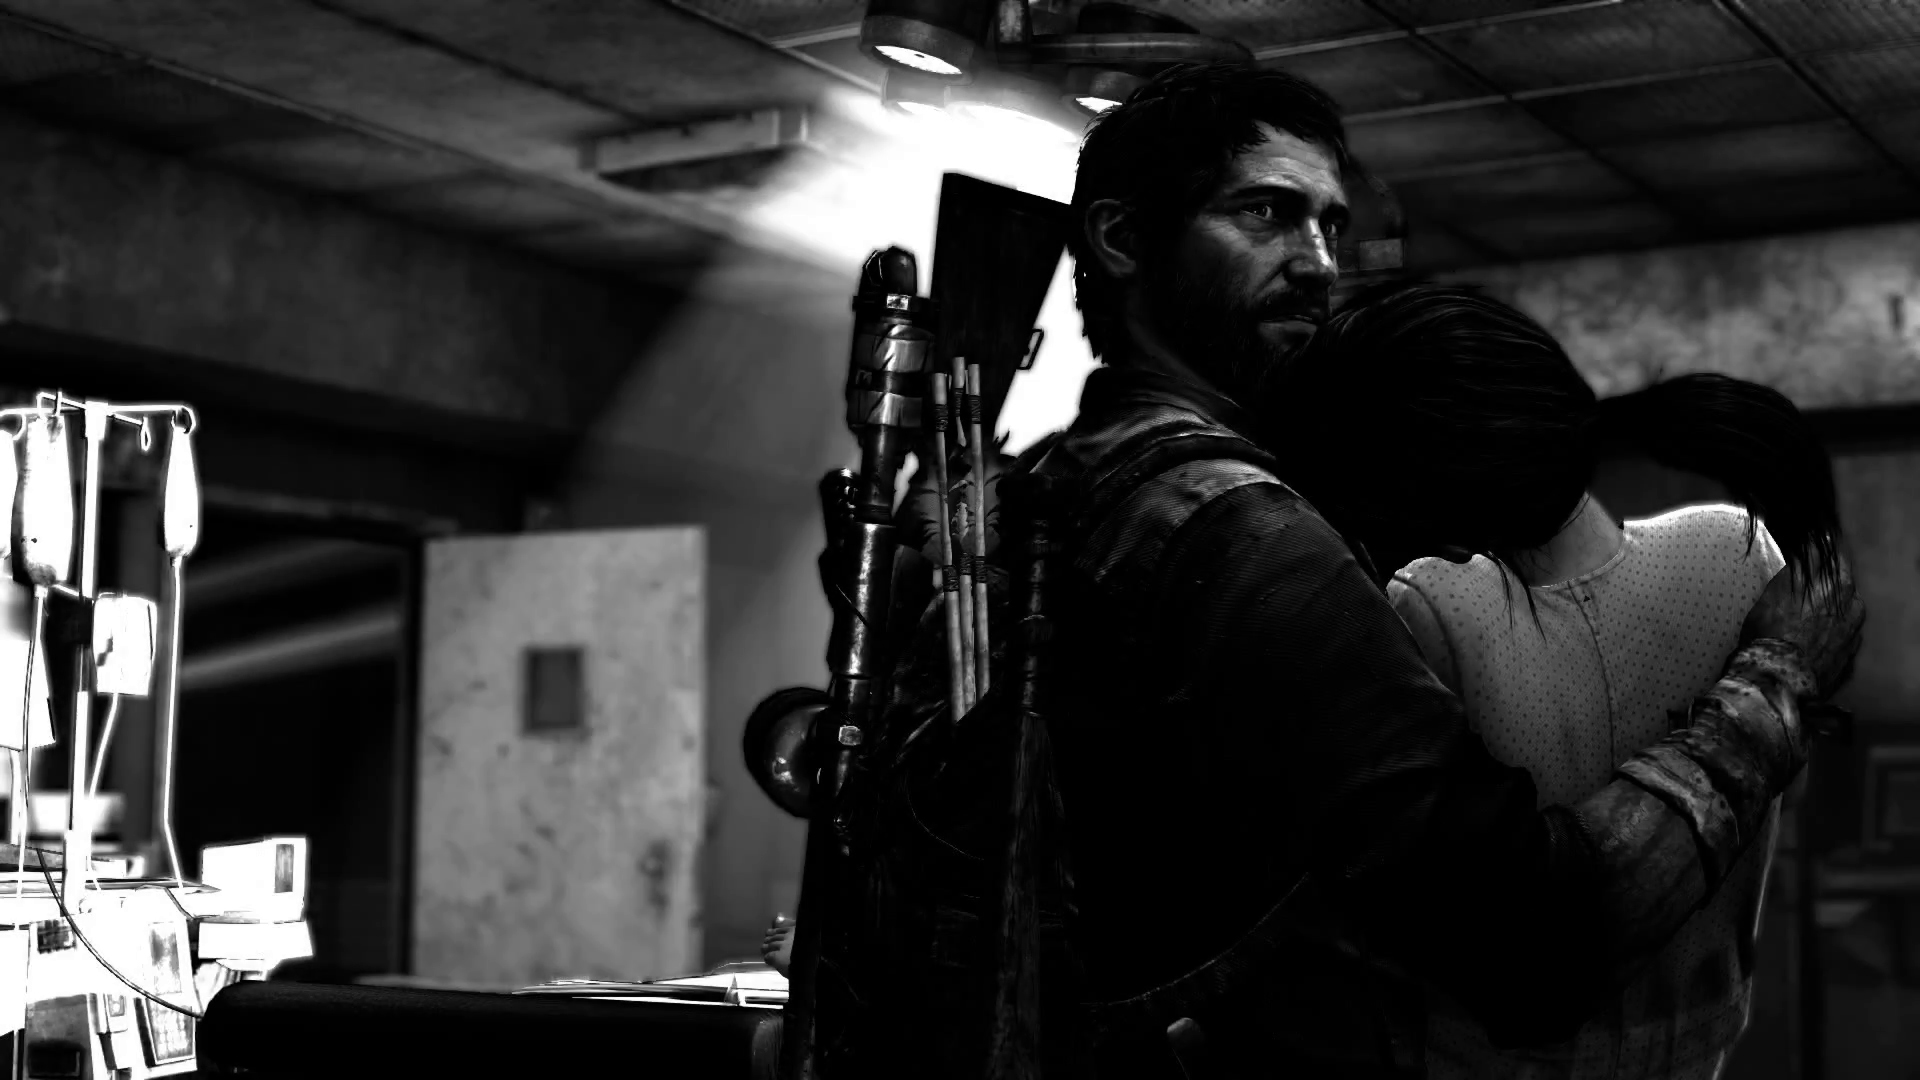 The Last Of Us Remastered Hd Wallpaper Background Image